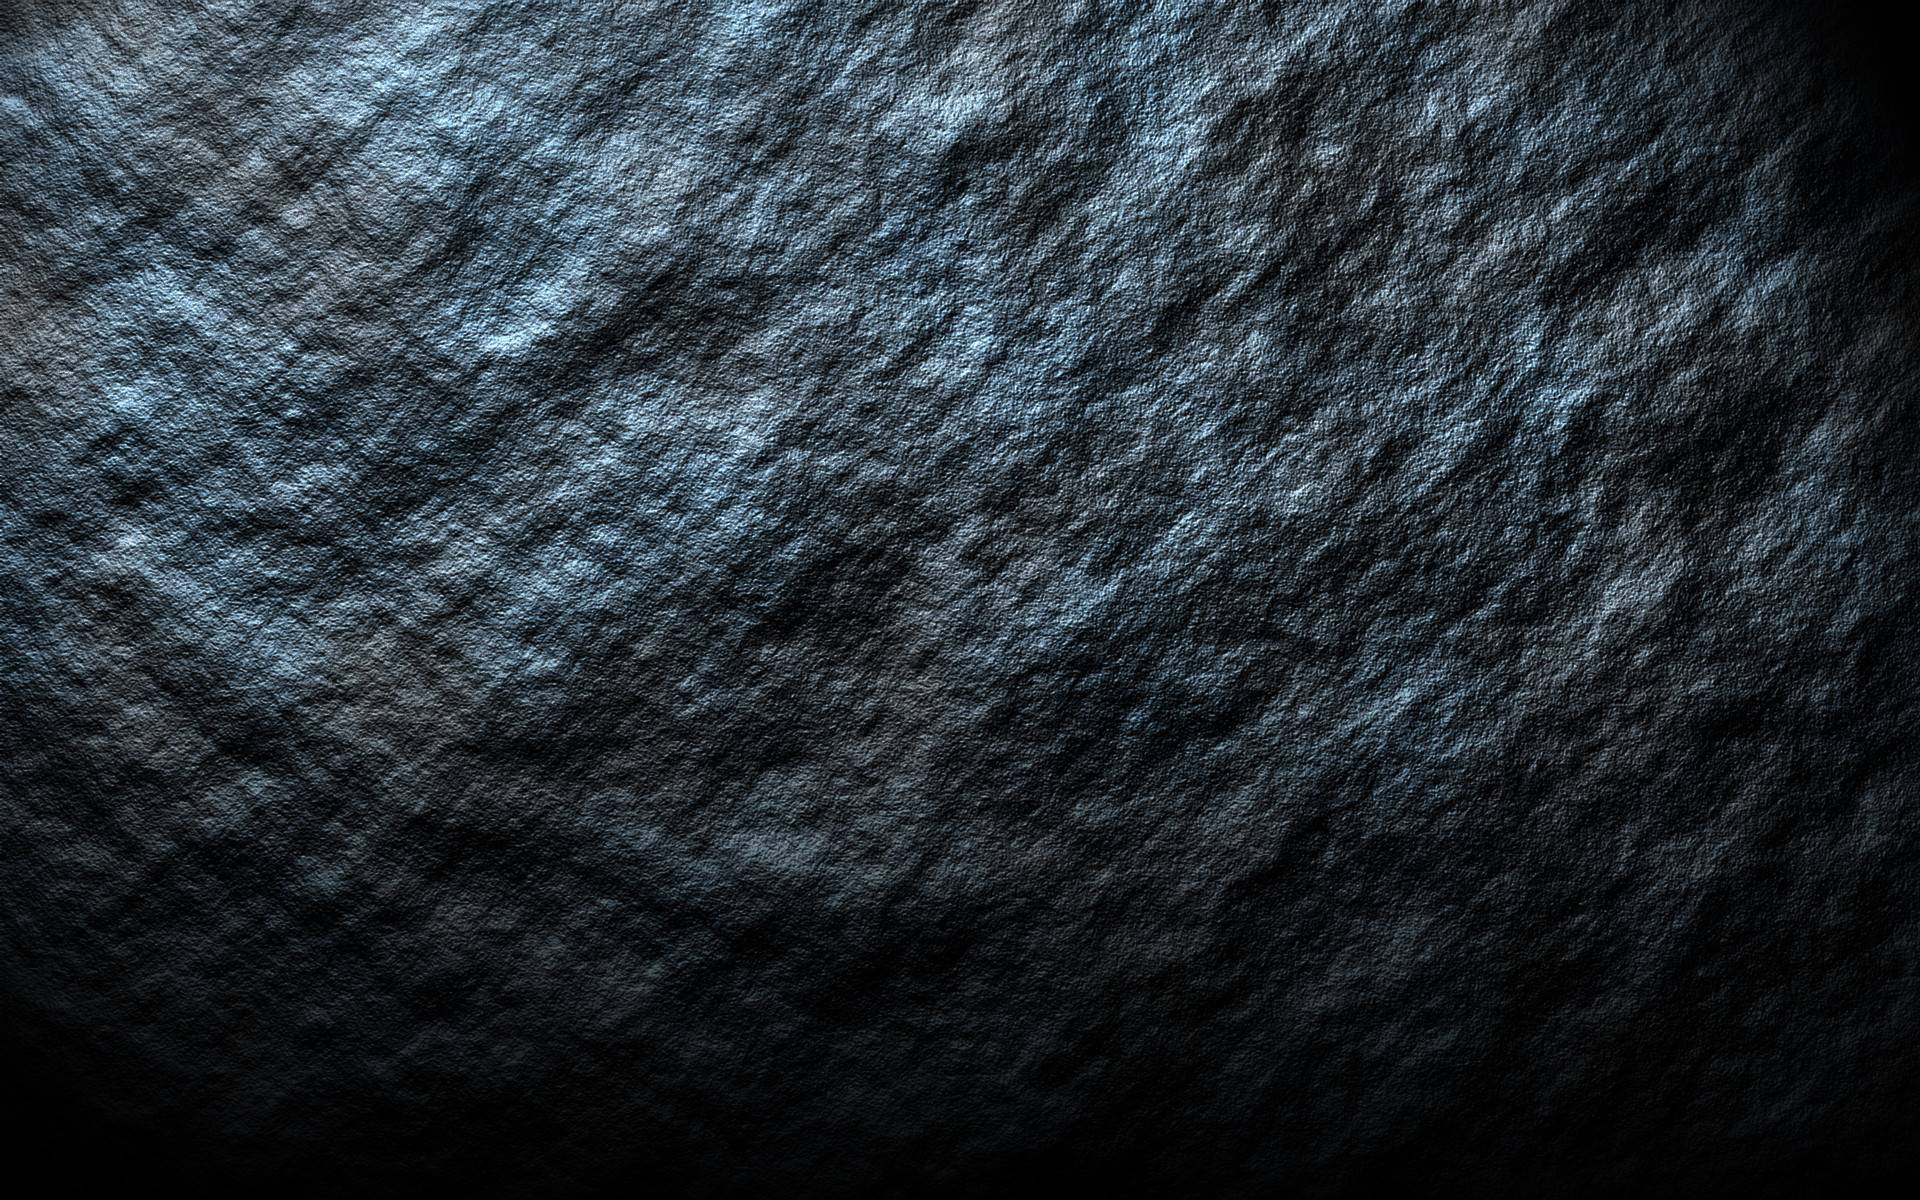 Dark Backgrounds Image - Wallpaper Cave